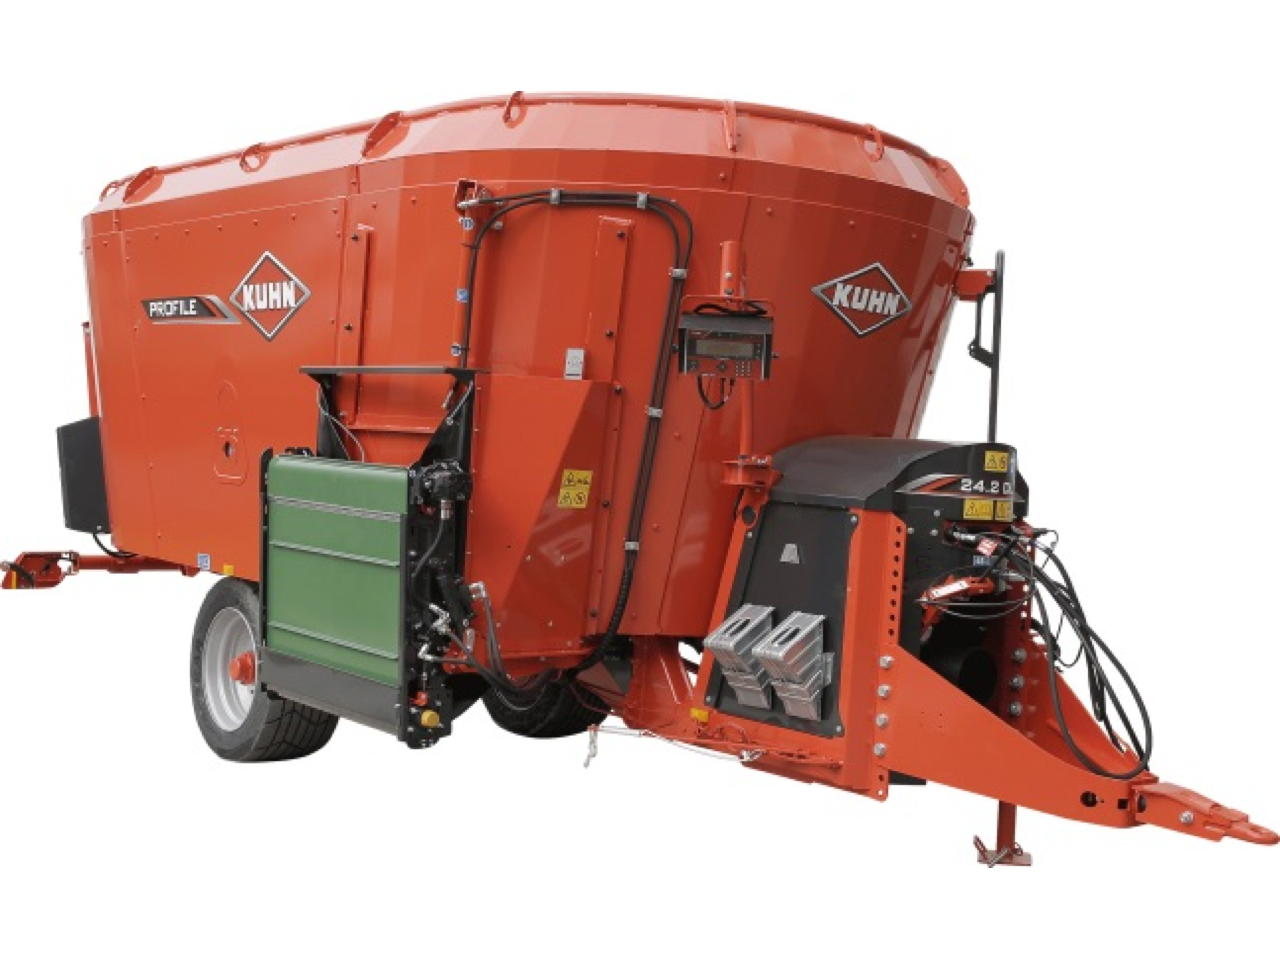 Kuhn Profile 2 DL Profile 28.2 DL